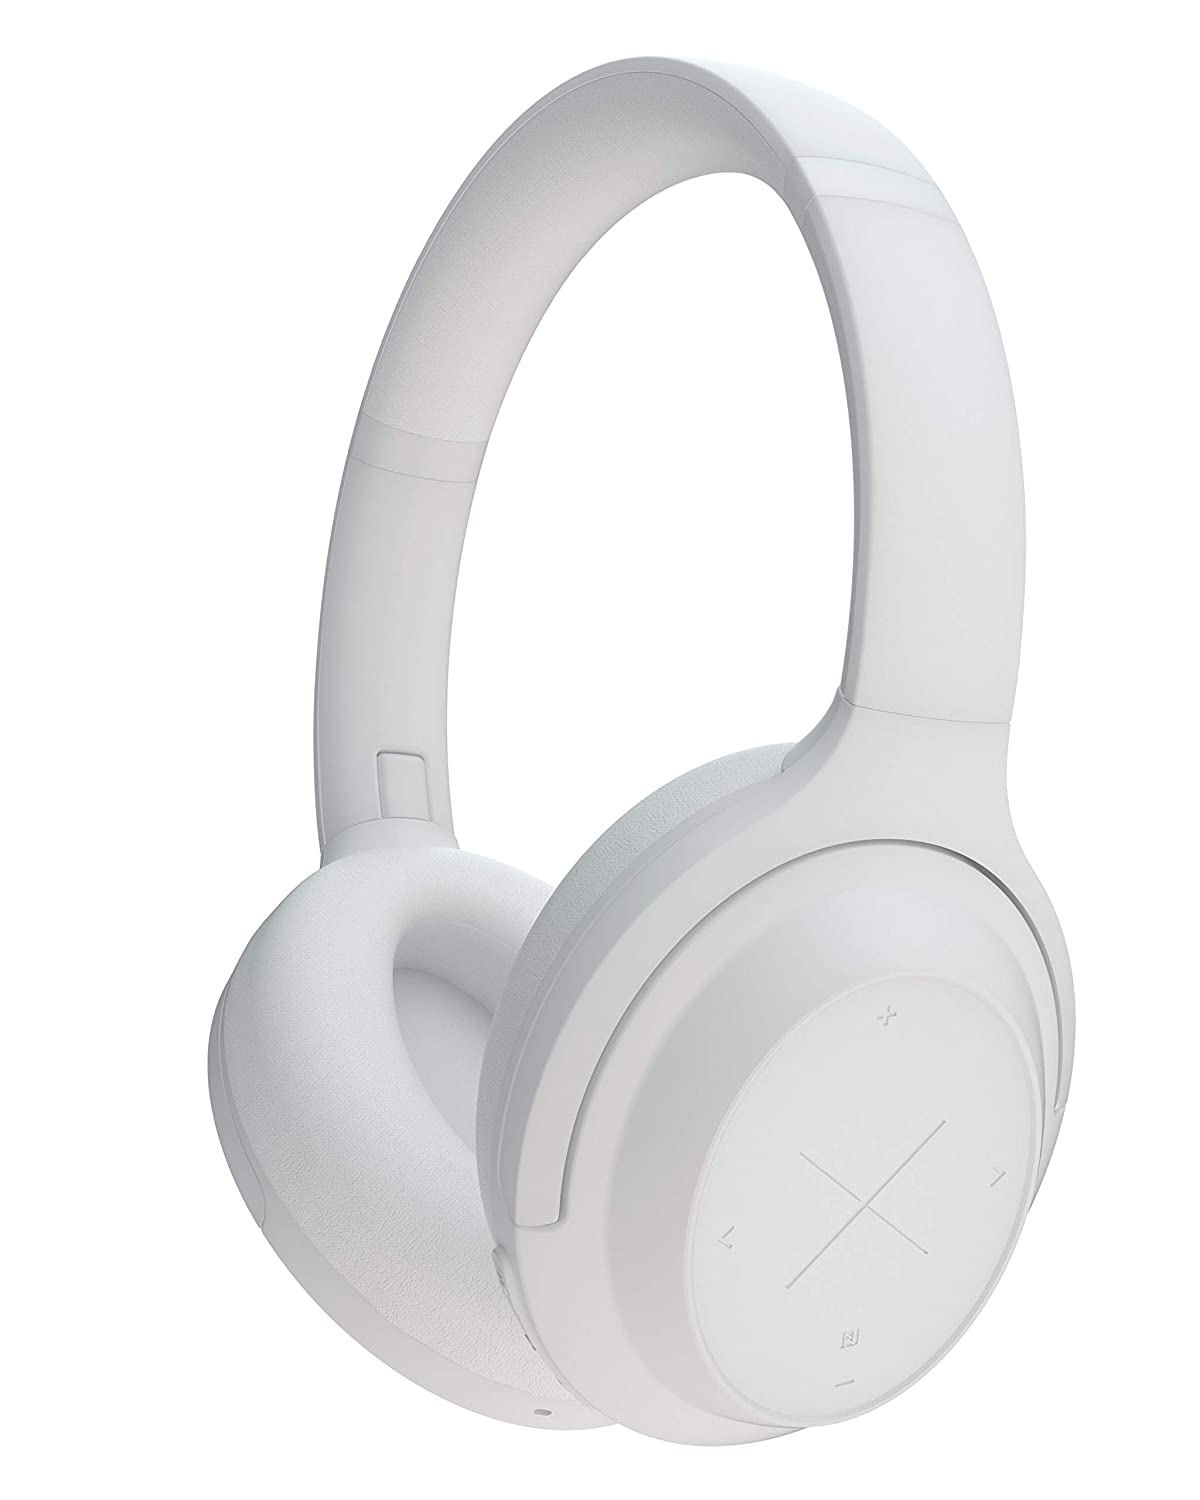 Kygo Life A11/800 | Over-Ear Bluetooth Active Noise Canceling Headphones, aptX and AAC Codecs, Built-in Microphone, Memory Foam Ear Cushions, 40 hours Playback, Kygo Sound App, Pro Line (White)